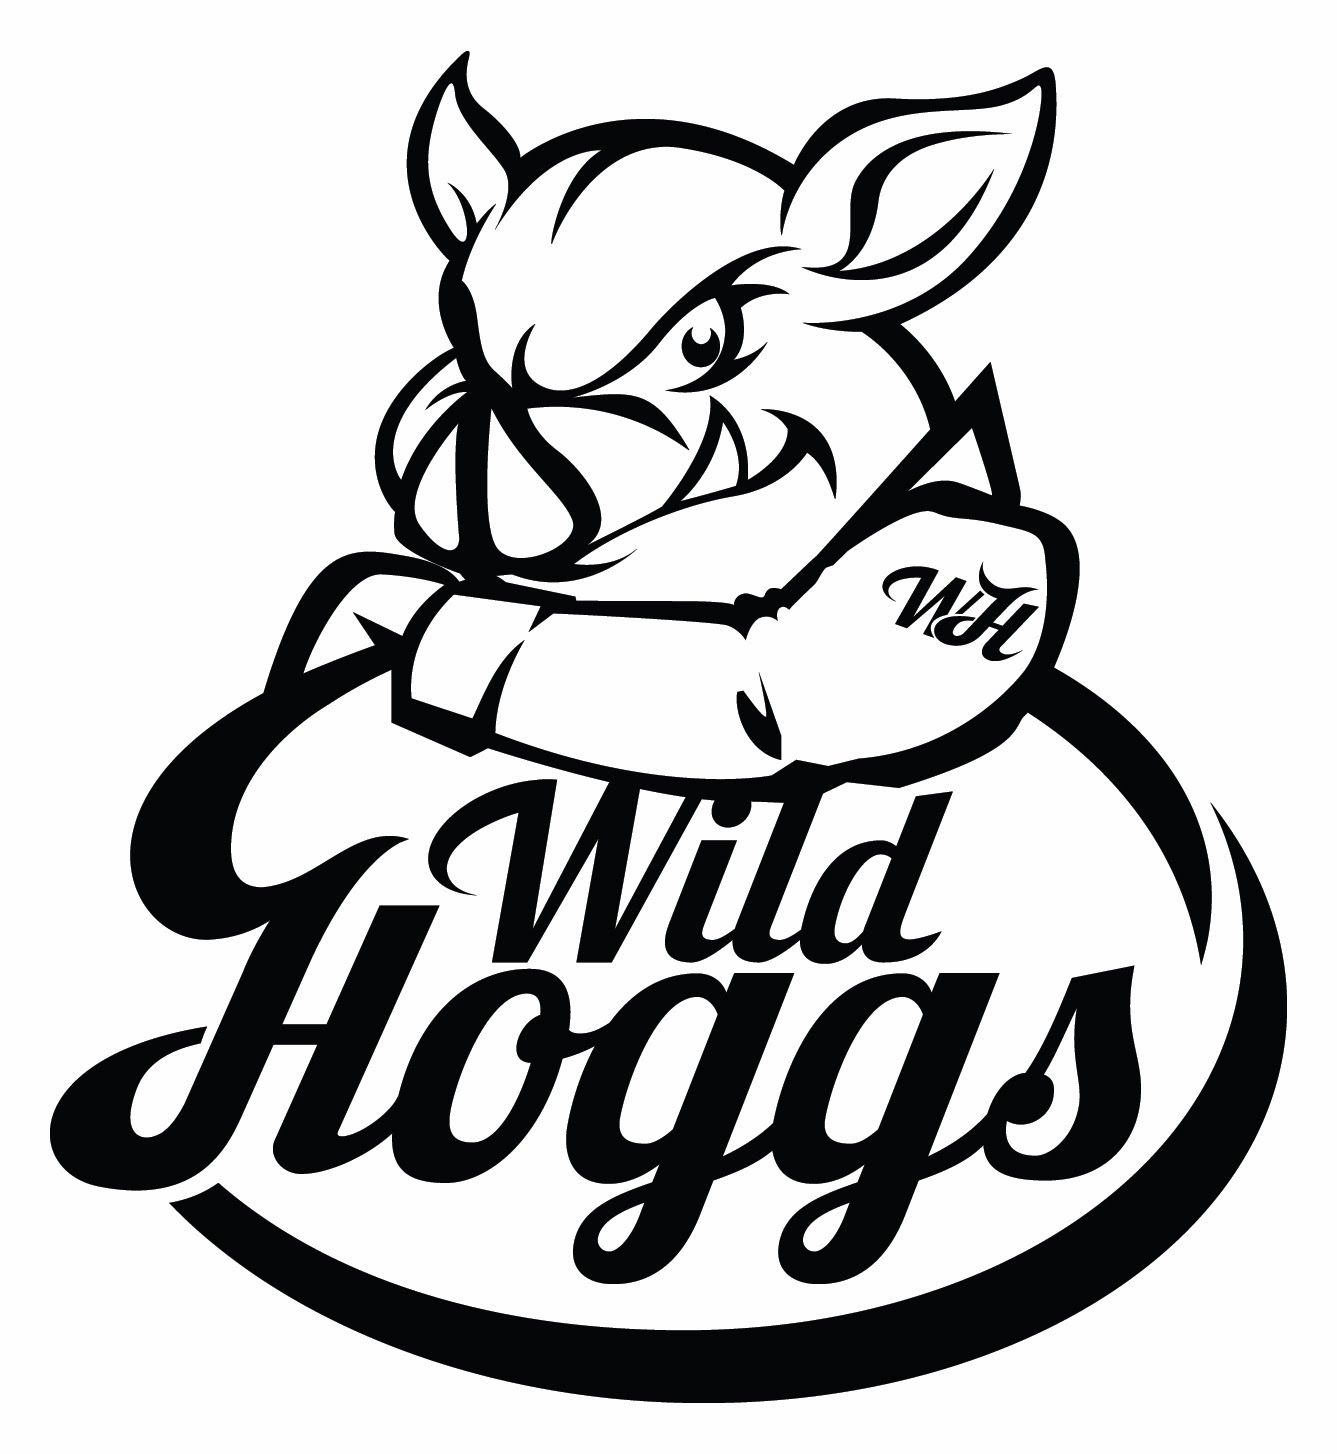 Wild Hoggs Motorcycle Ride for MS: Sponsors